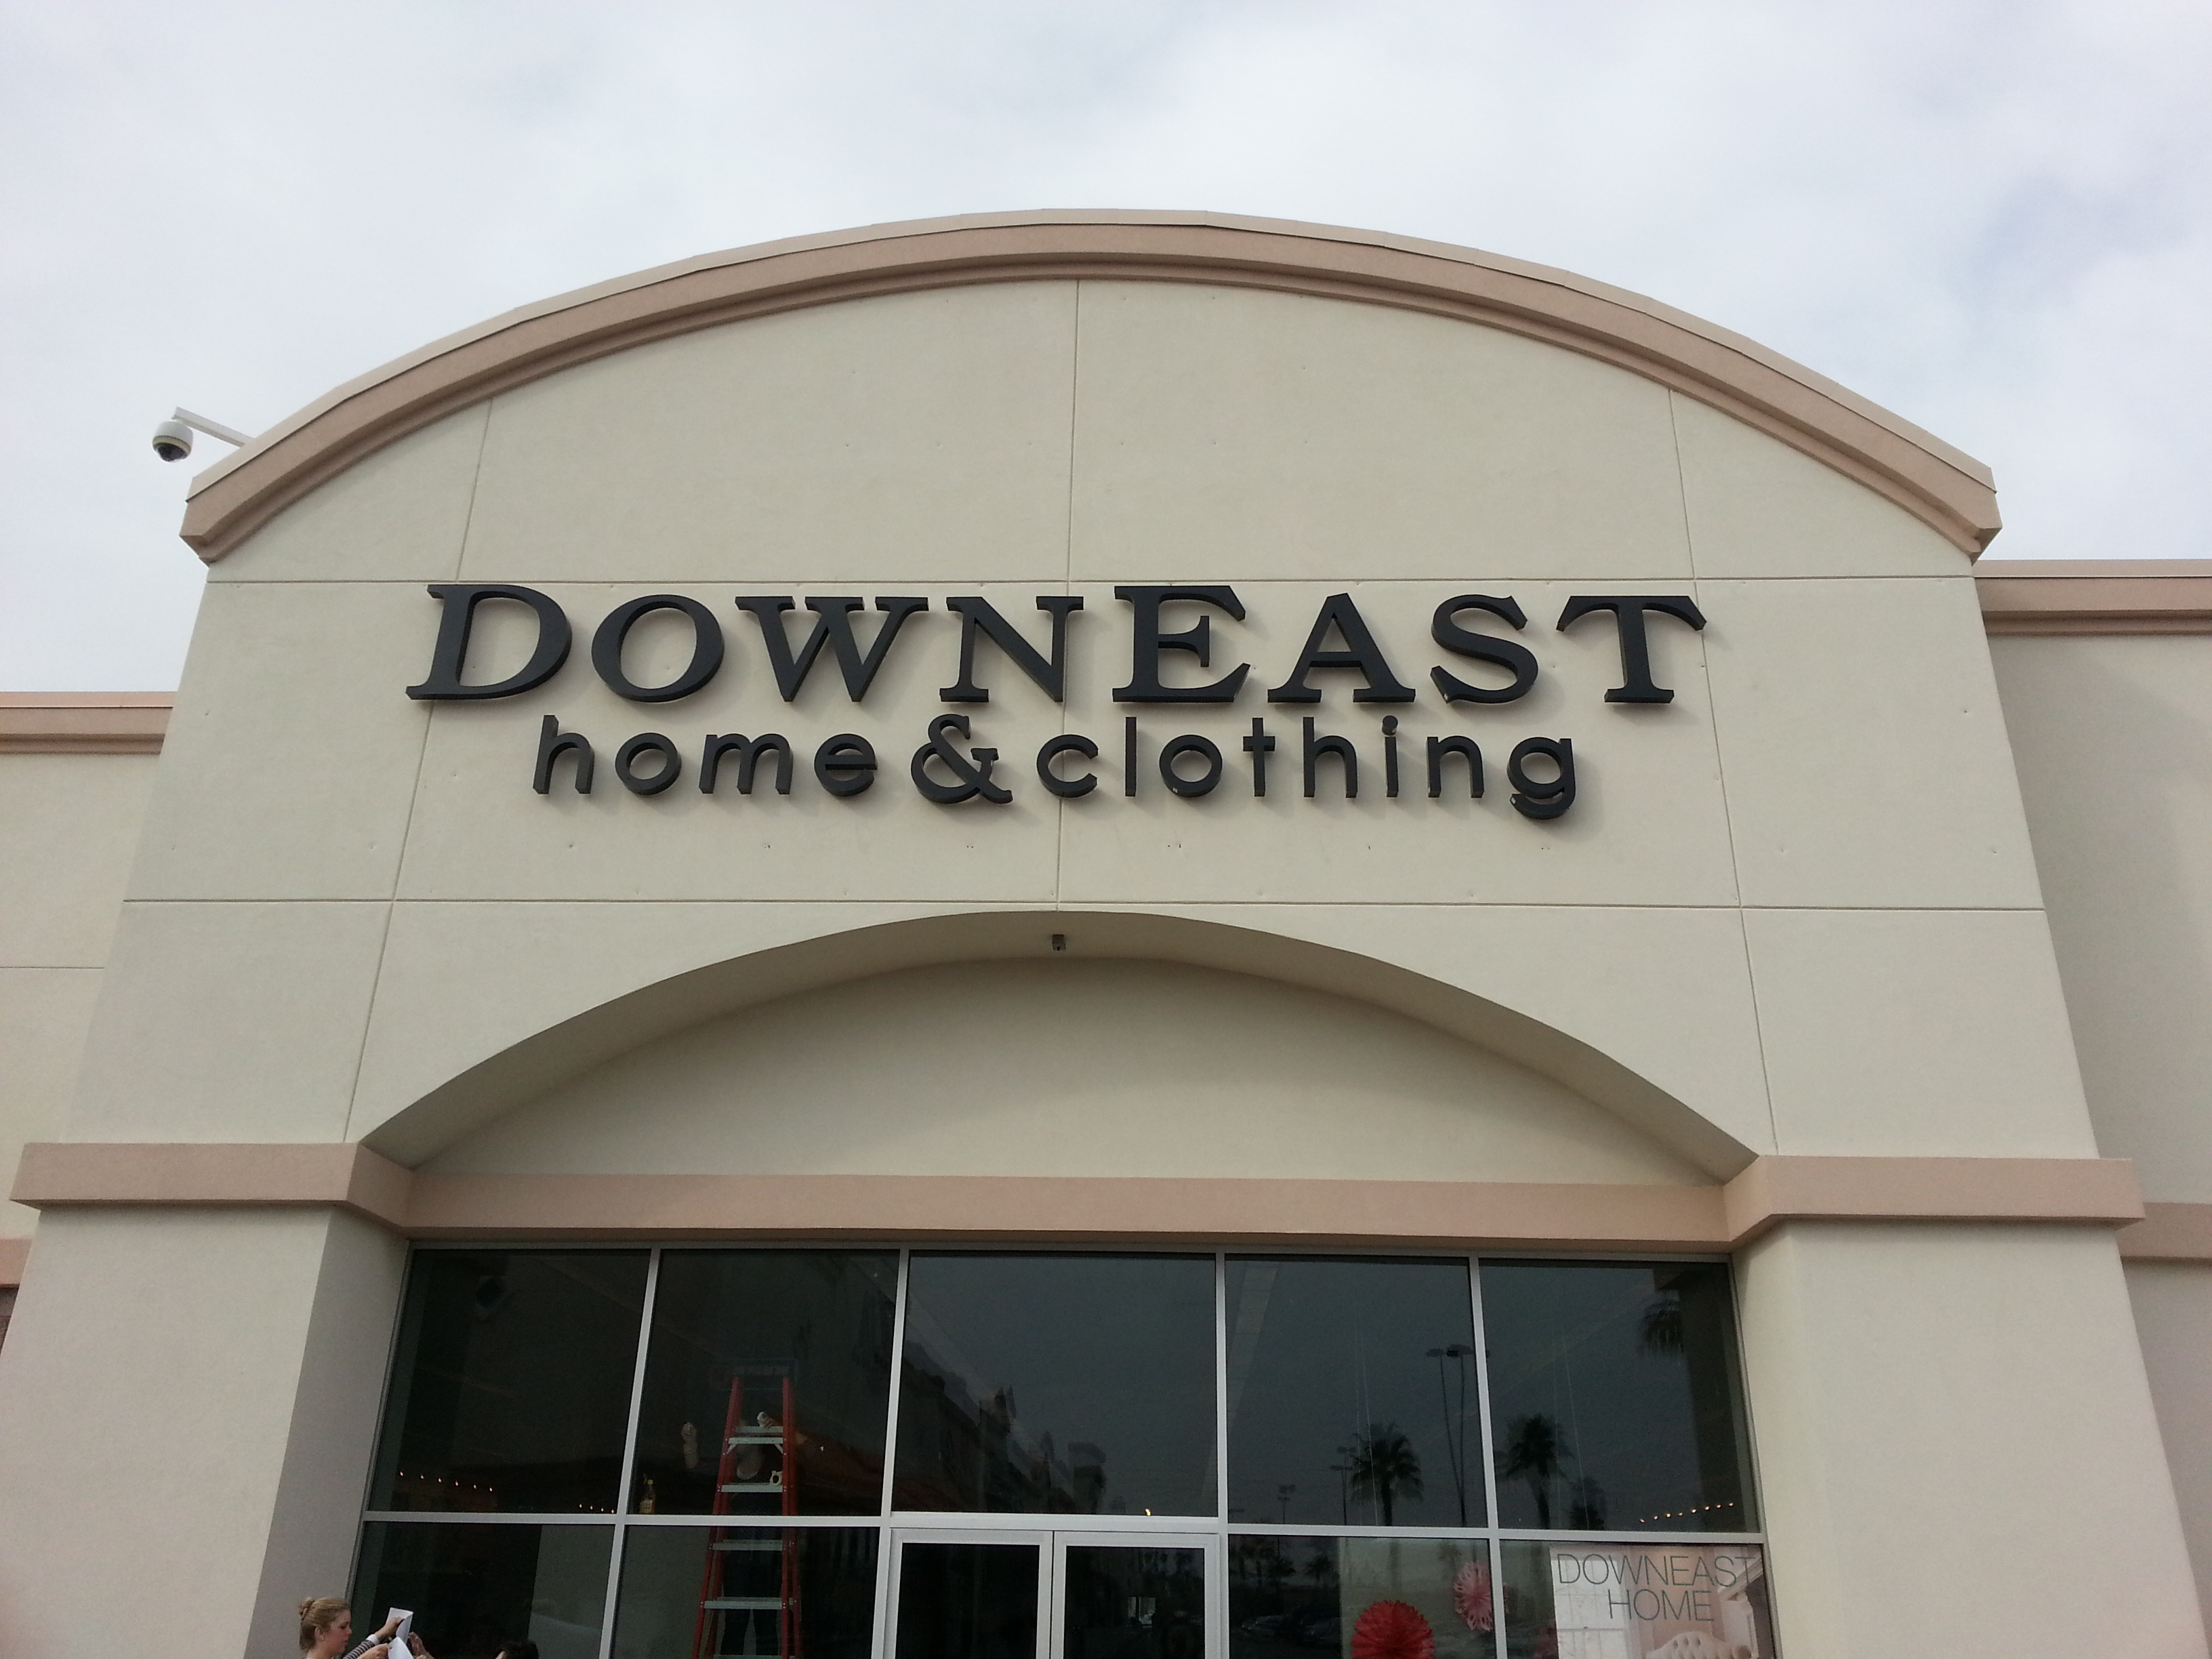 Downeast clothing store